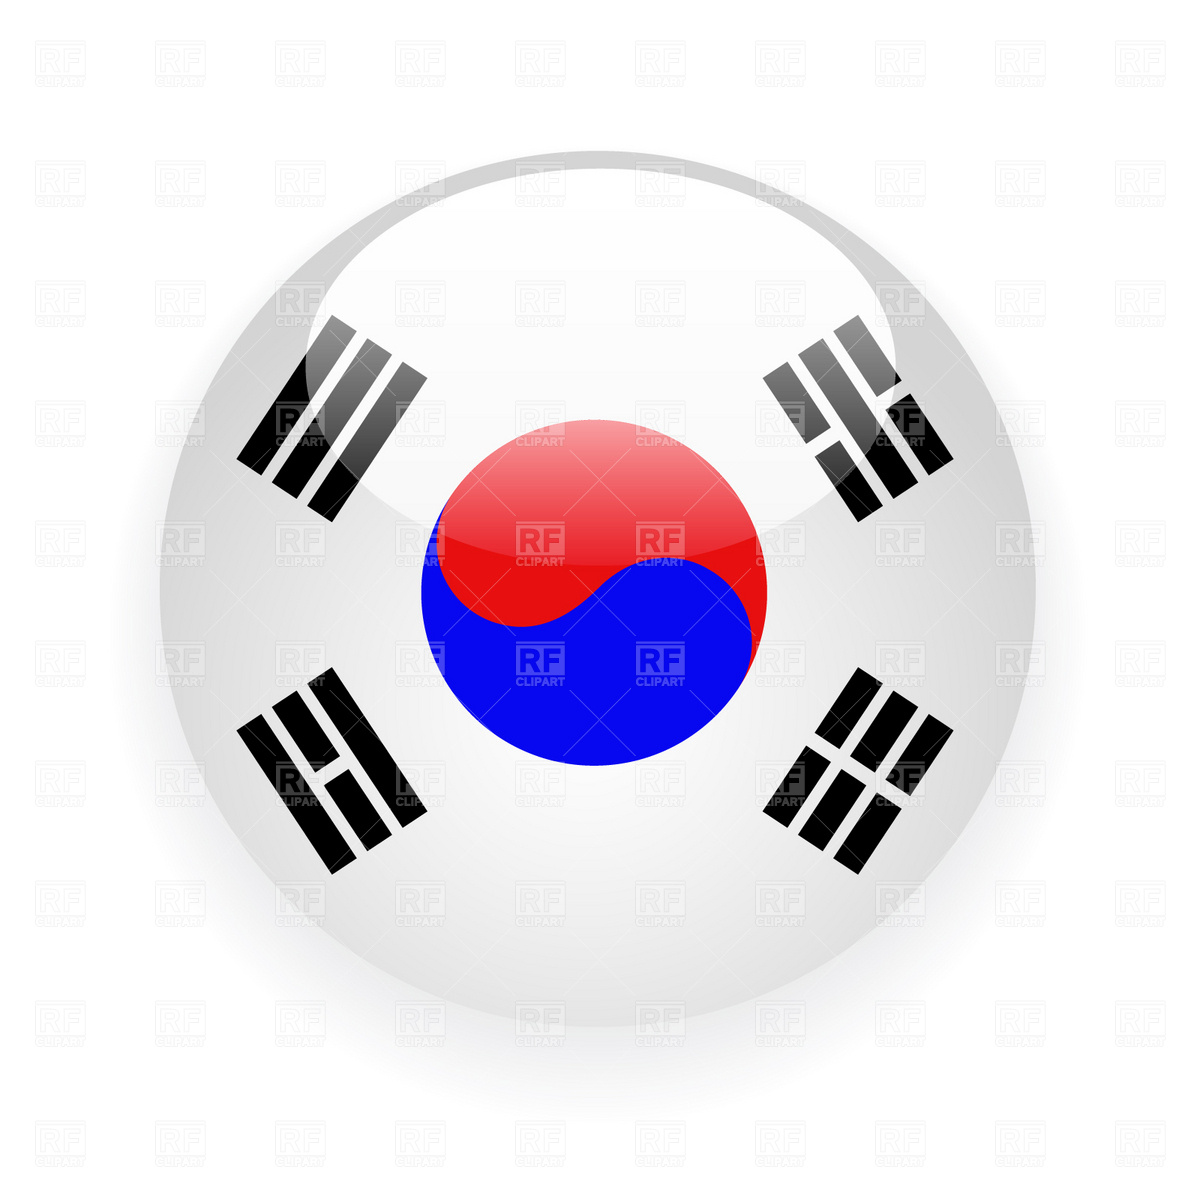 Korea clipart free download best korea clipart on clipartmag 1200x1200 south korea button flag icon royalty free vector clip art image biocorpaavc Image collections